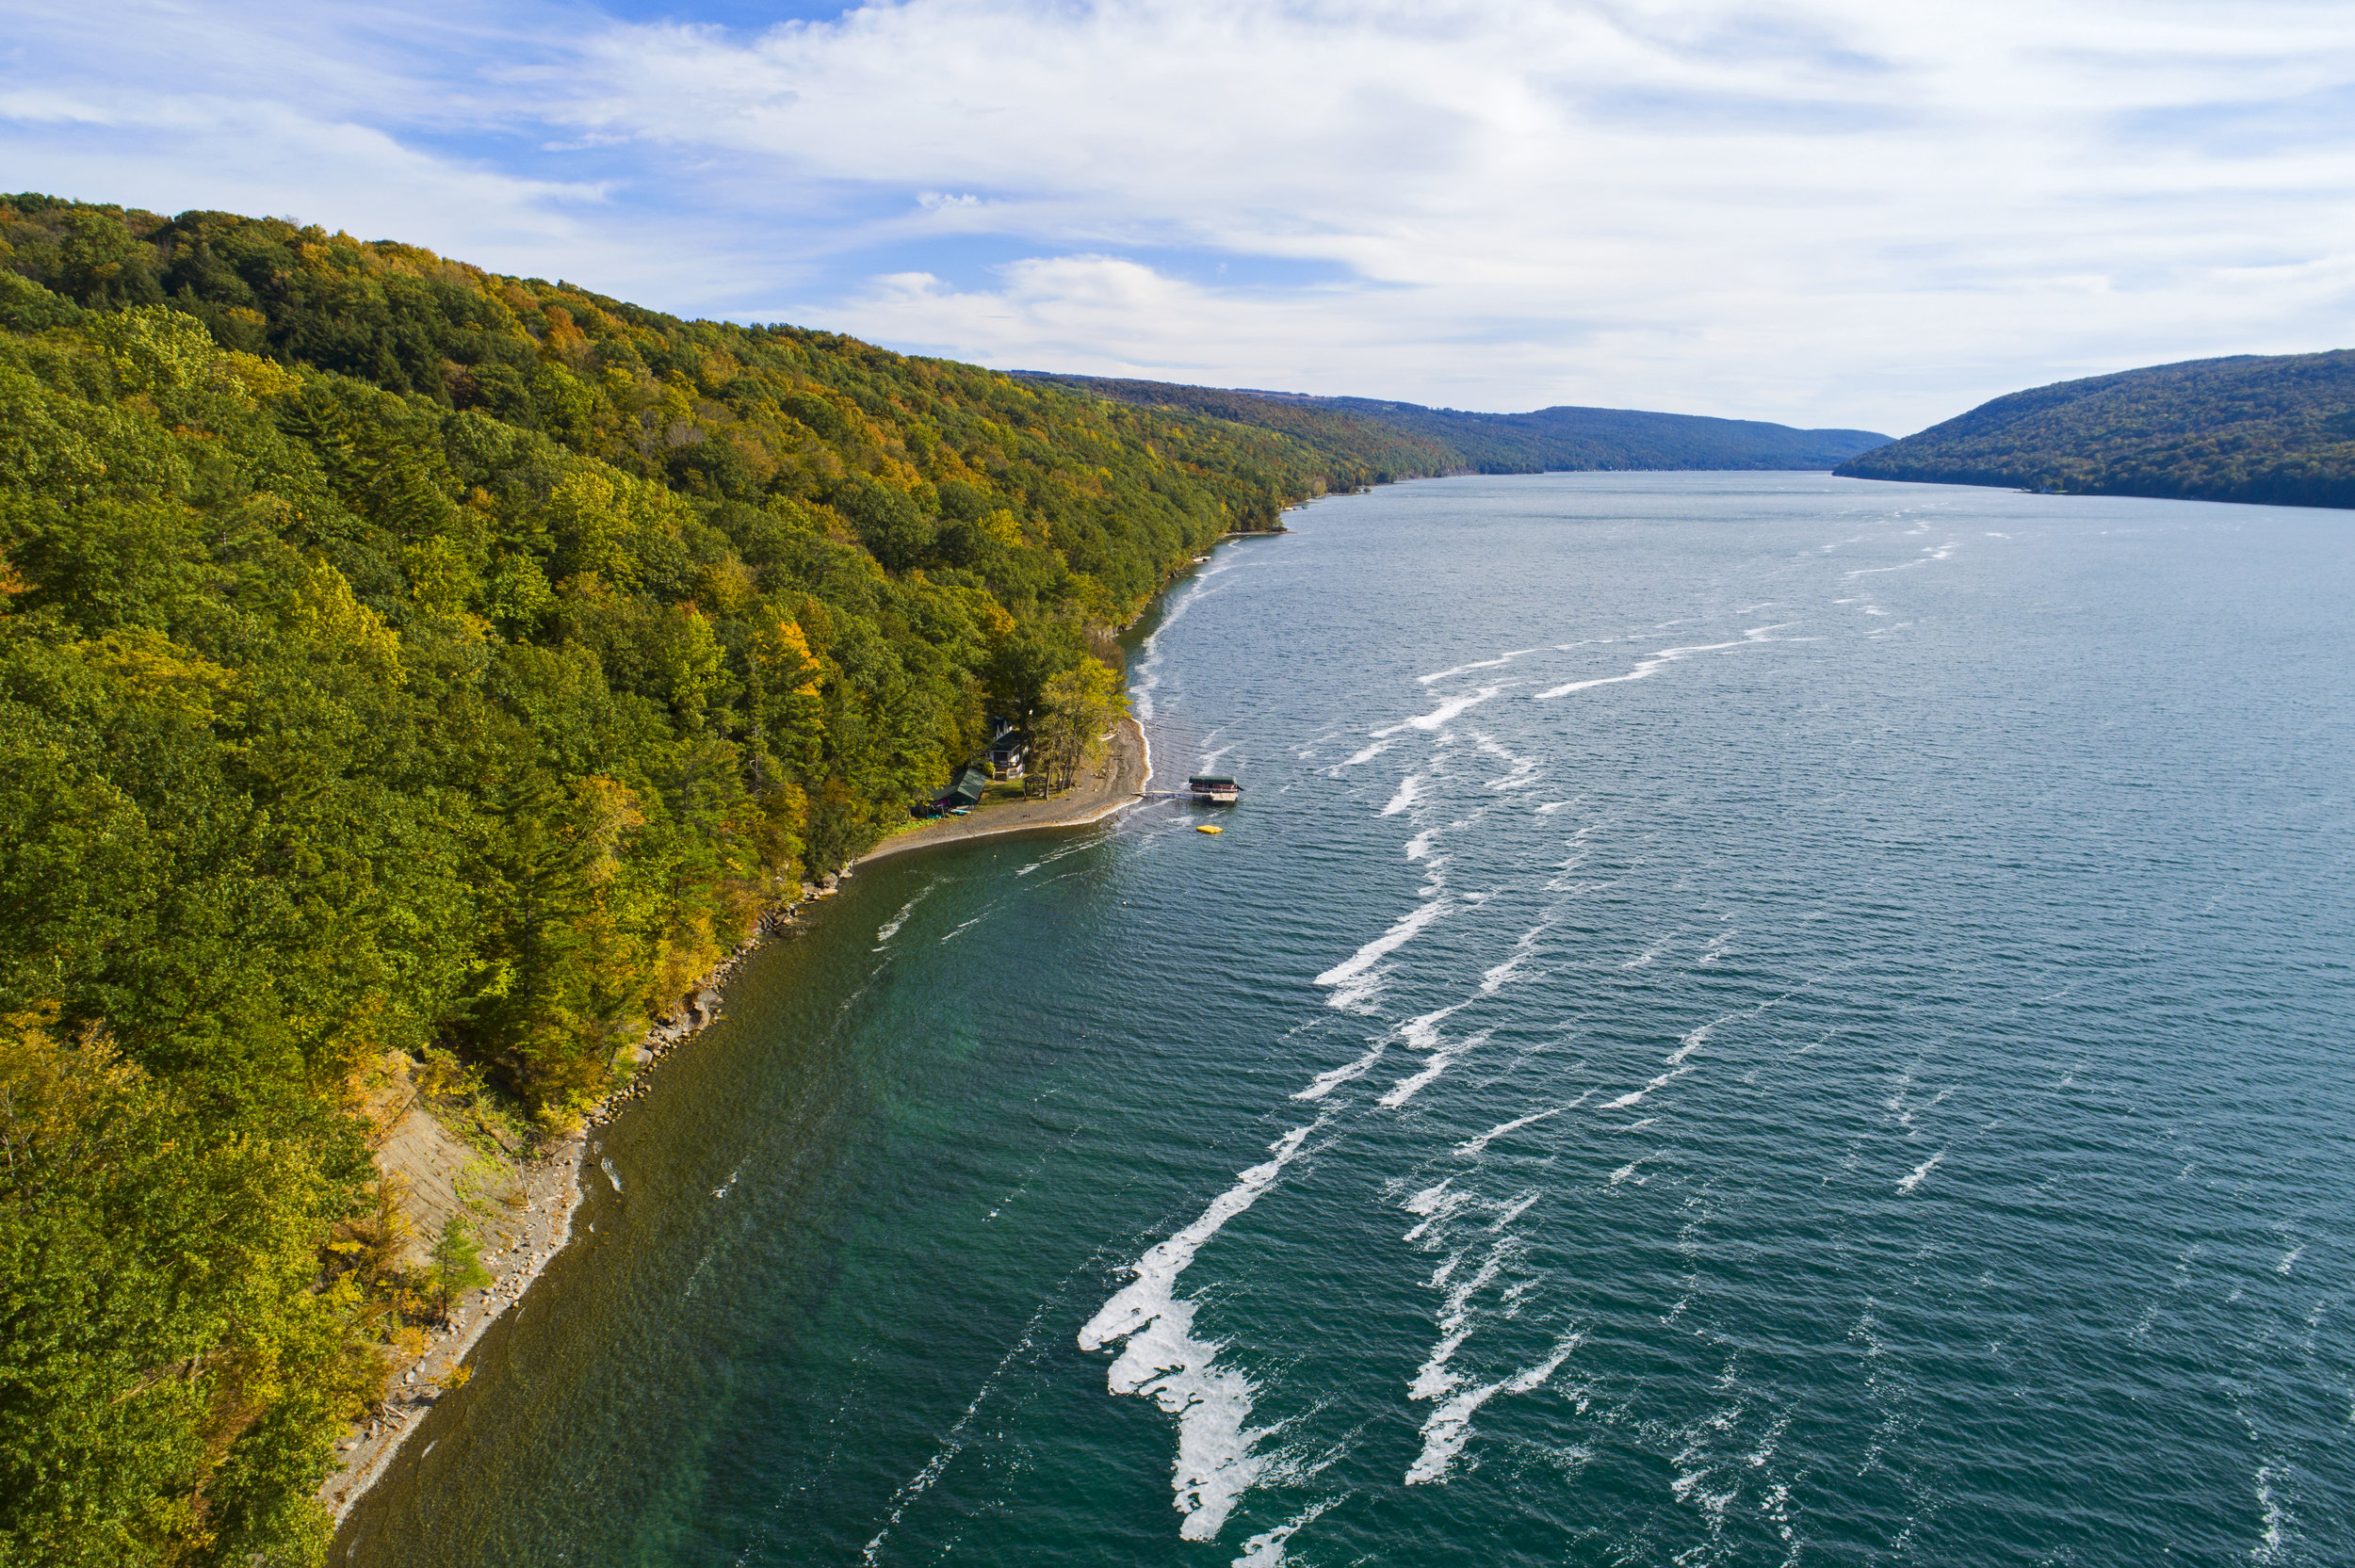 (3)  Camp Longhorn, 974 Ten Mile Point, Skaneateles, NY 13152, For Sale DJI_0278.jpg